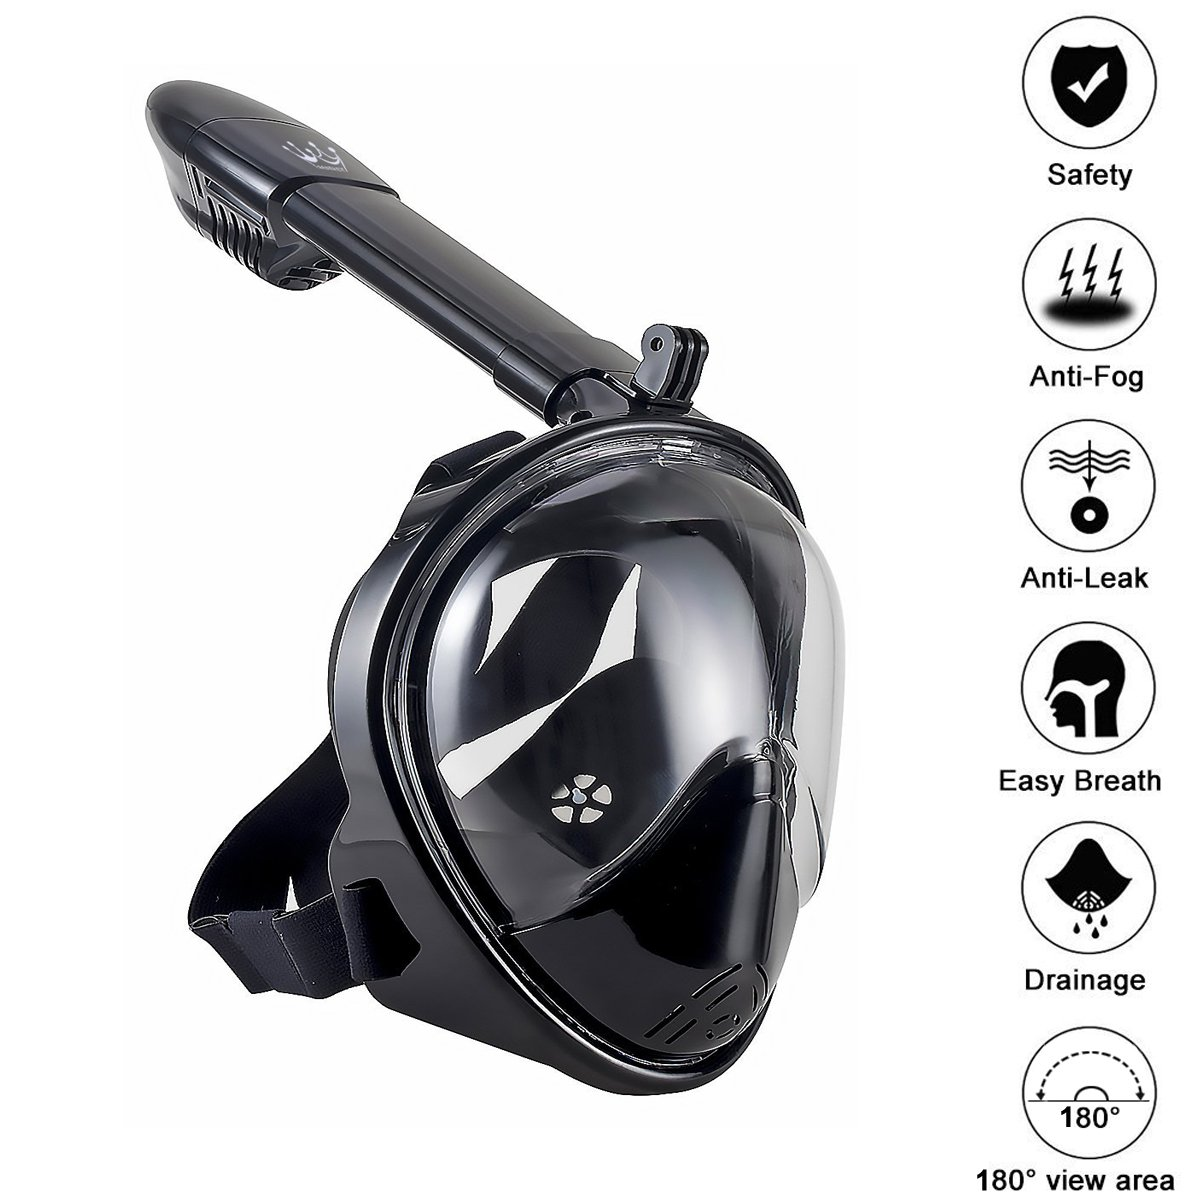 Bestrey Full Face Diving Mask Swimming Mask 180° Panoramic View Anti-Fog Anti-Leak Snorkel Mask Snorkeling Mask with Adjustable Head Straps for Adult Kids Kit Equipment (L/XL) by Bestrey